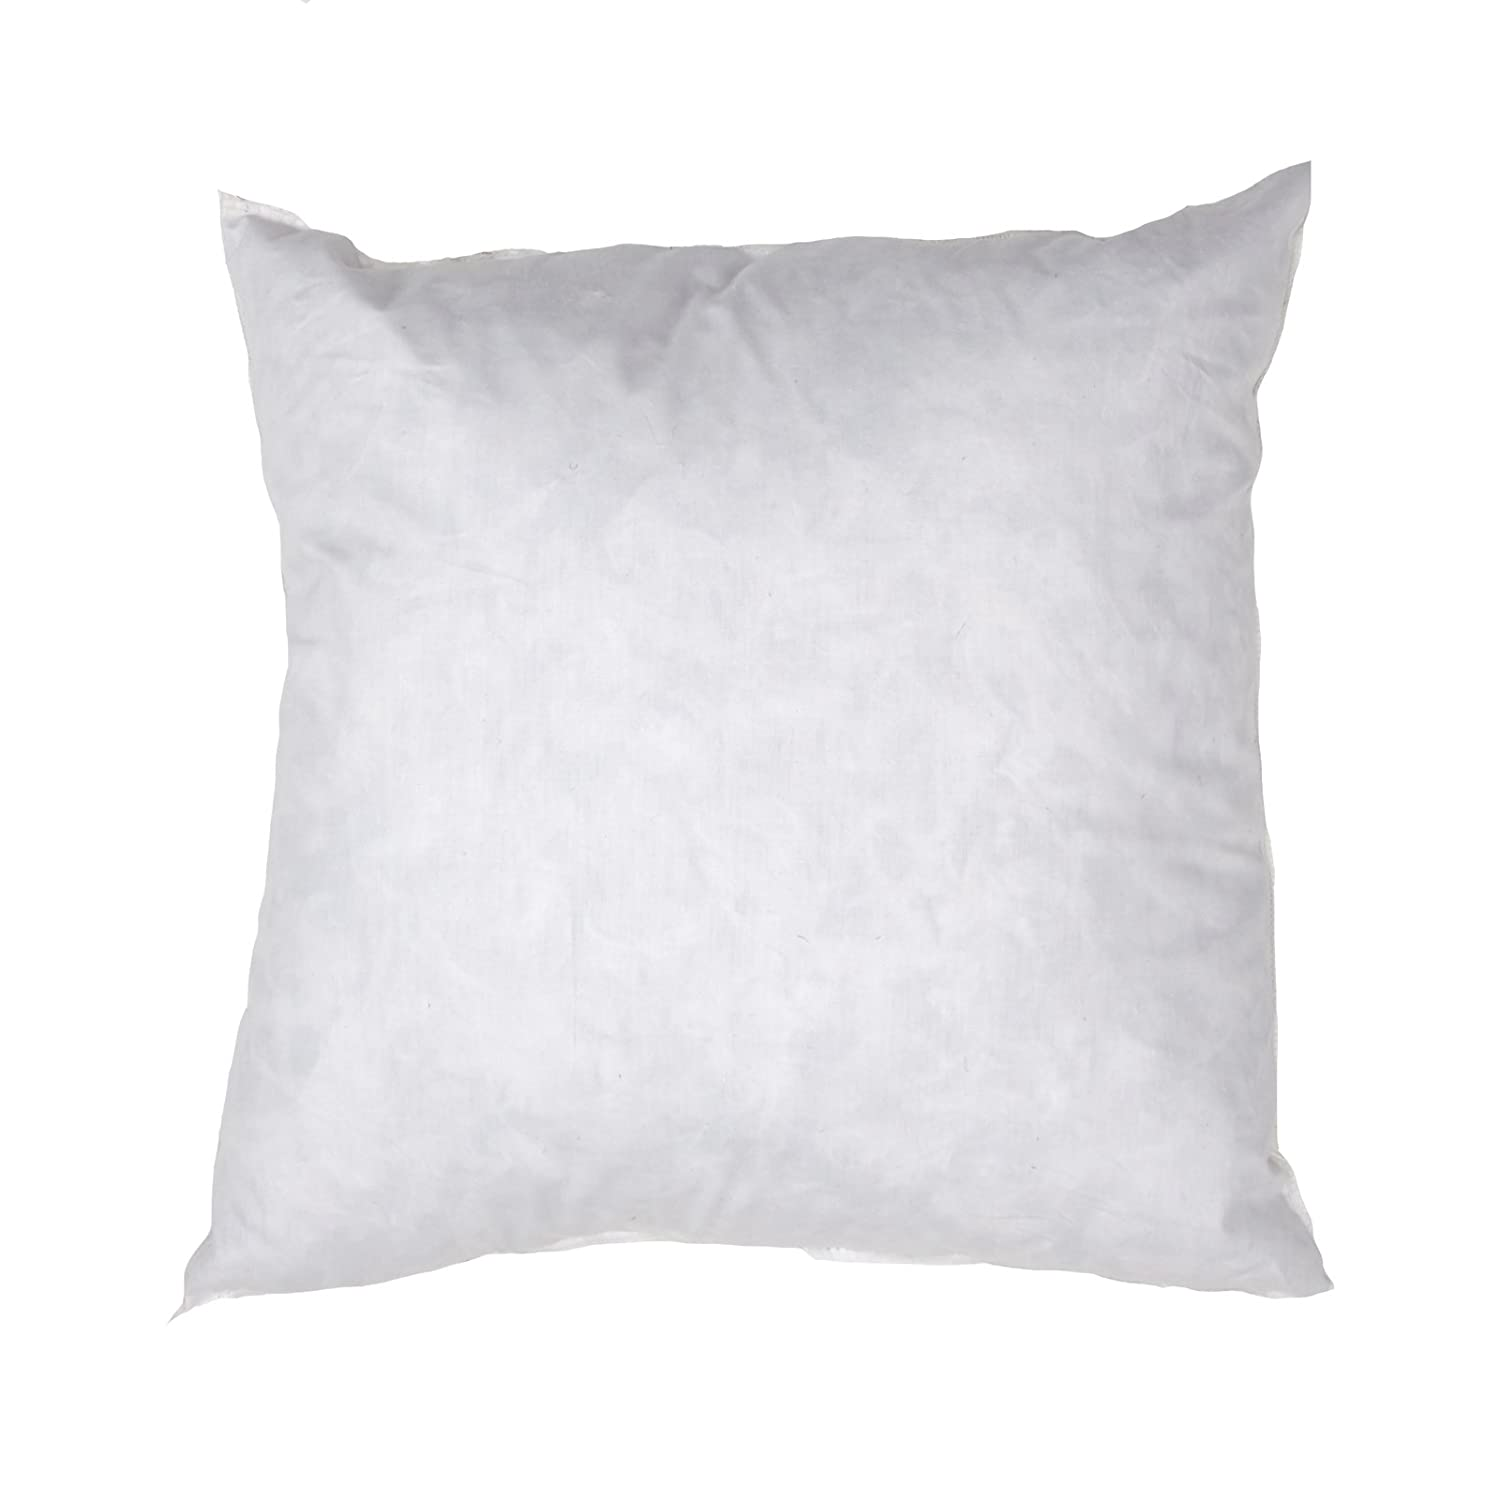 Famous Maker 14in x 14in Feather/Down Pillow Form White, White Fabric.com PIL-006